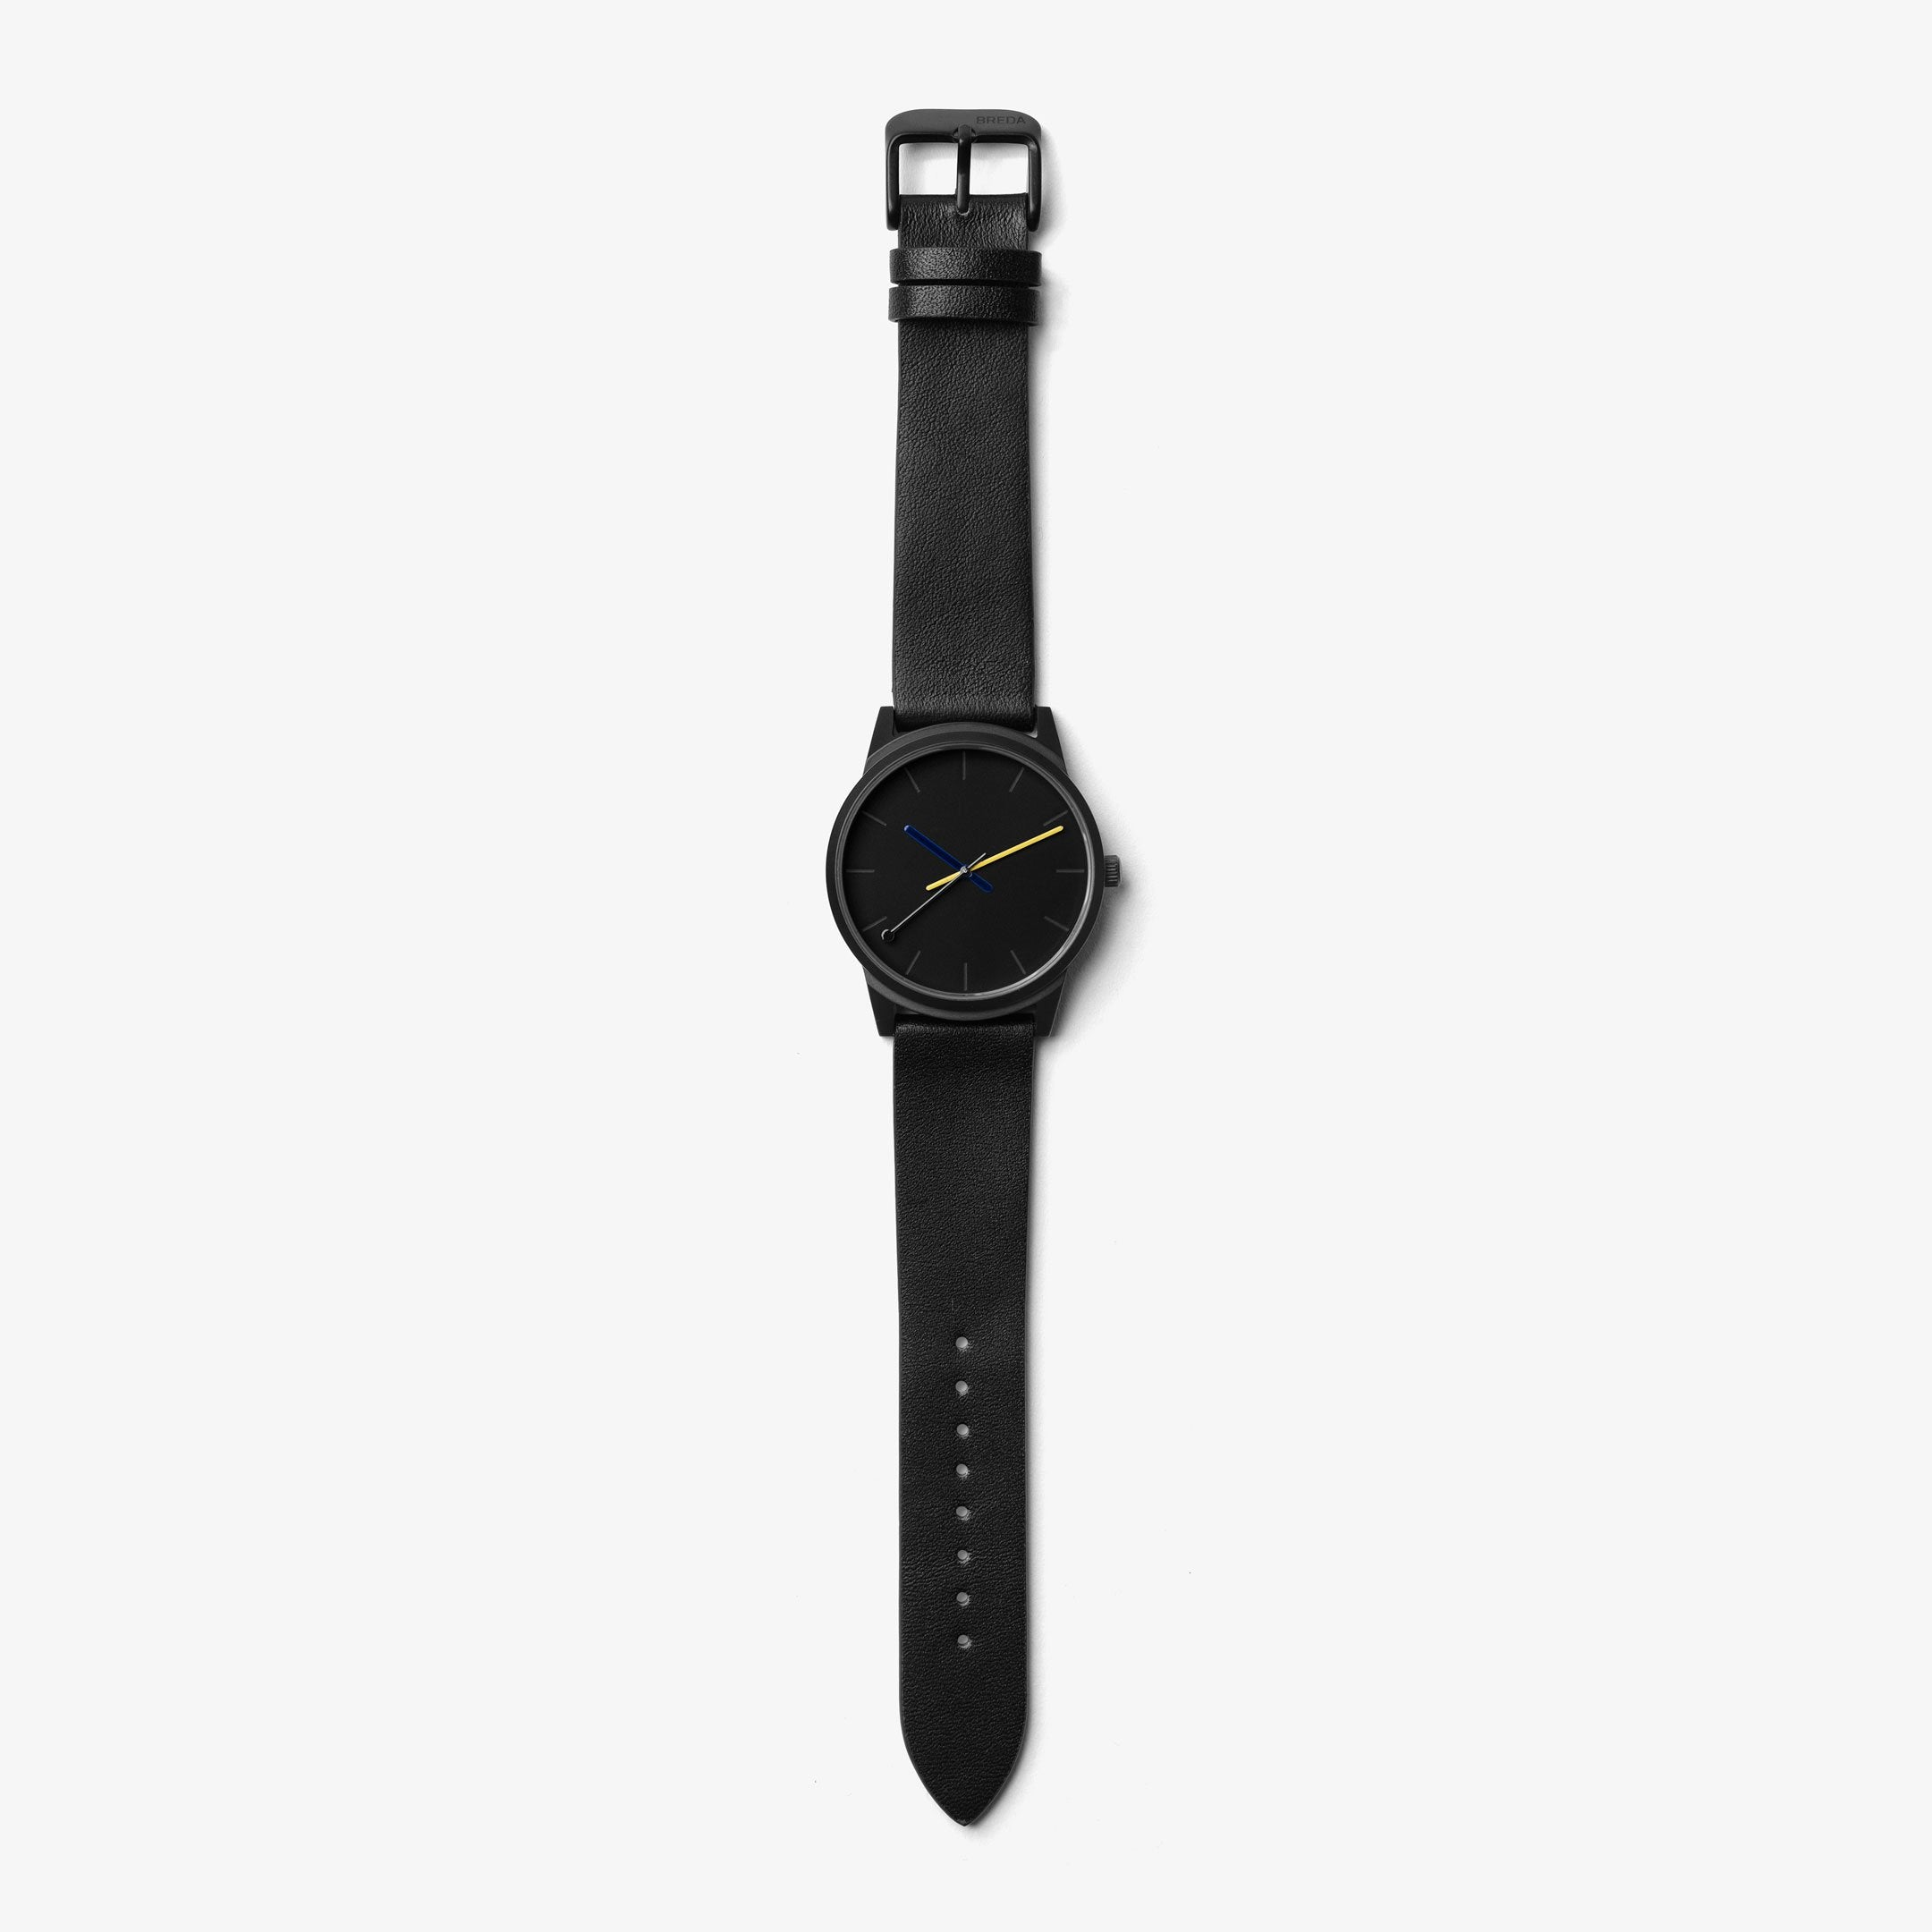 //cdn.shopify.com/s/files/1/0879/6650/products/breda-poketo-5021a-spectra-black-leather-band-collaboration-watch-long_1024x1024.jpg?v=1542823196